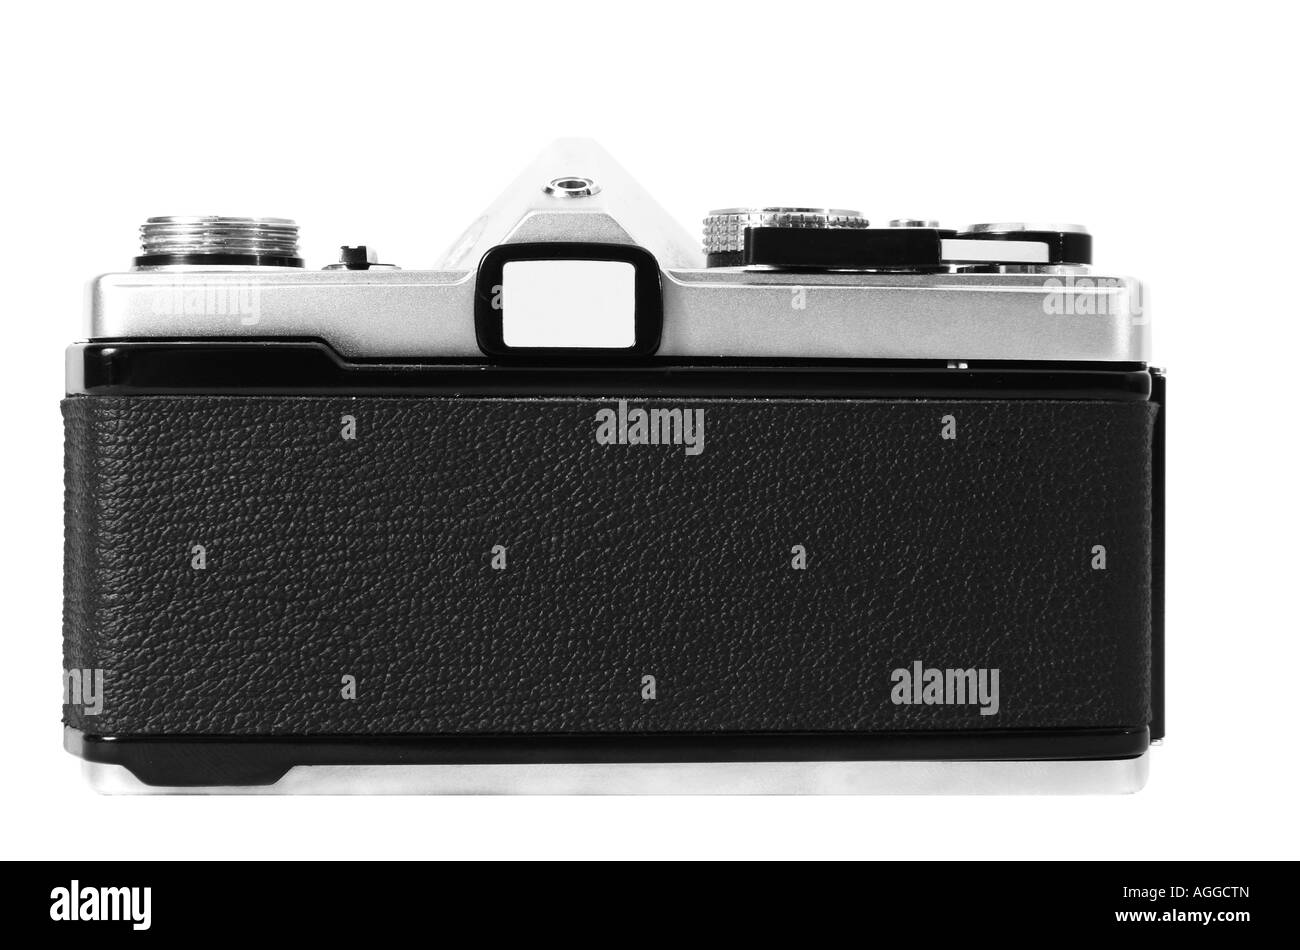 An old classic vintage 35mm camera shown in black and white from the back with film door closed - Stock Image